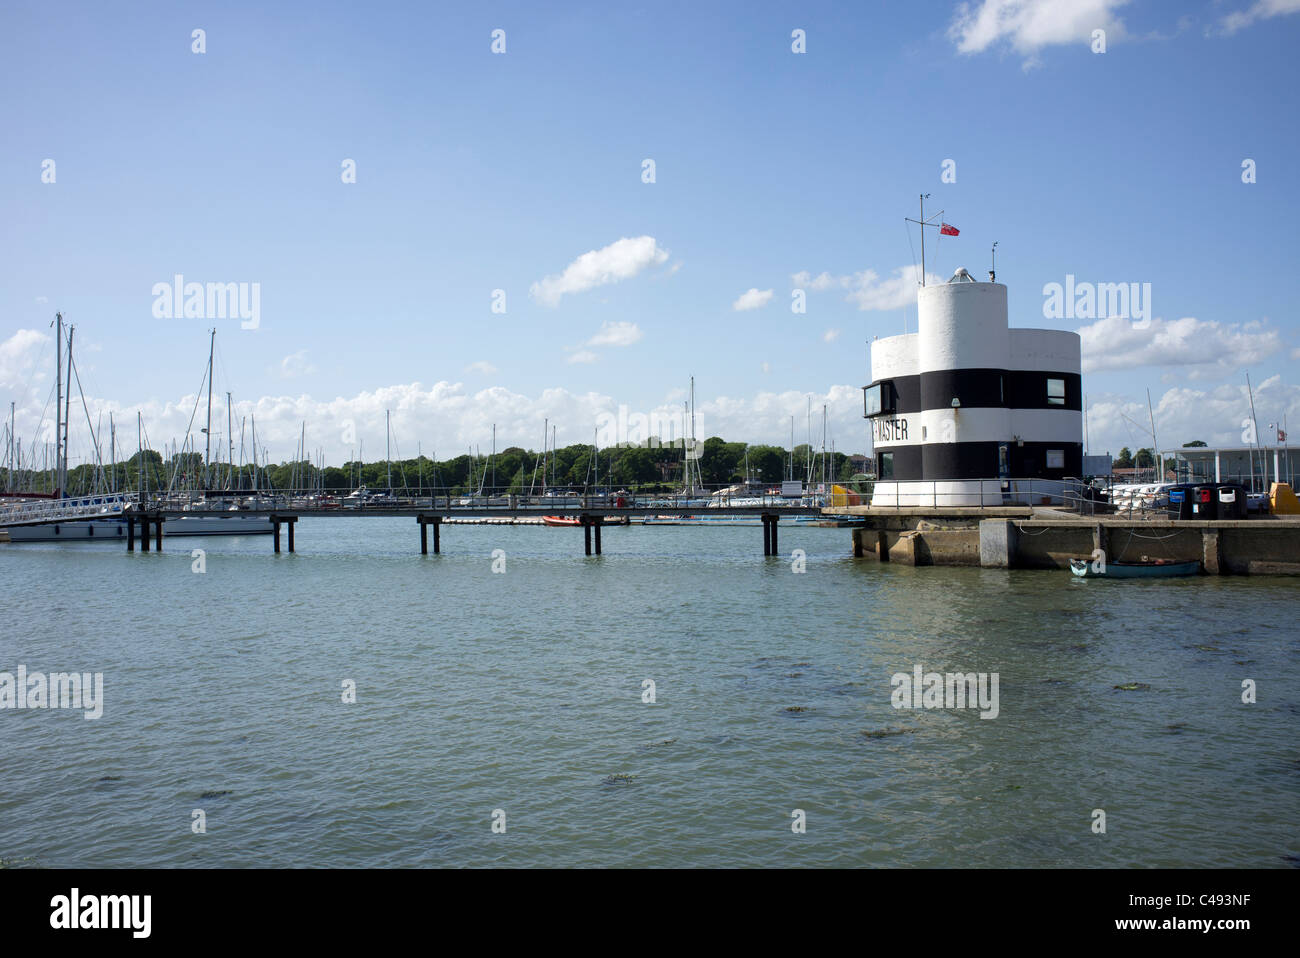 harbourmasters office at Warsash on the river Hamble, Hampshire, England, UK - Stock Image